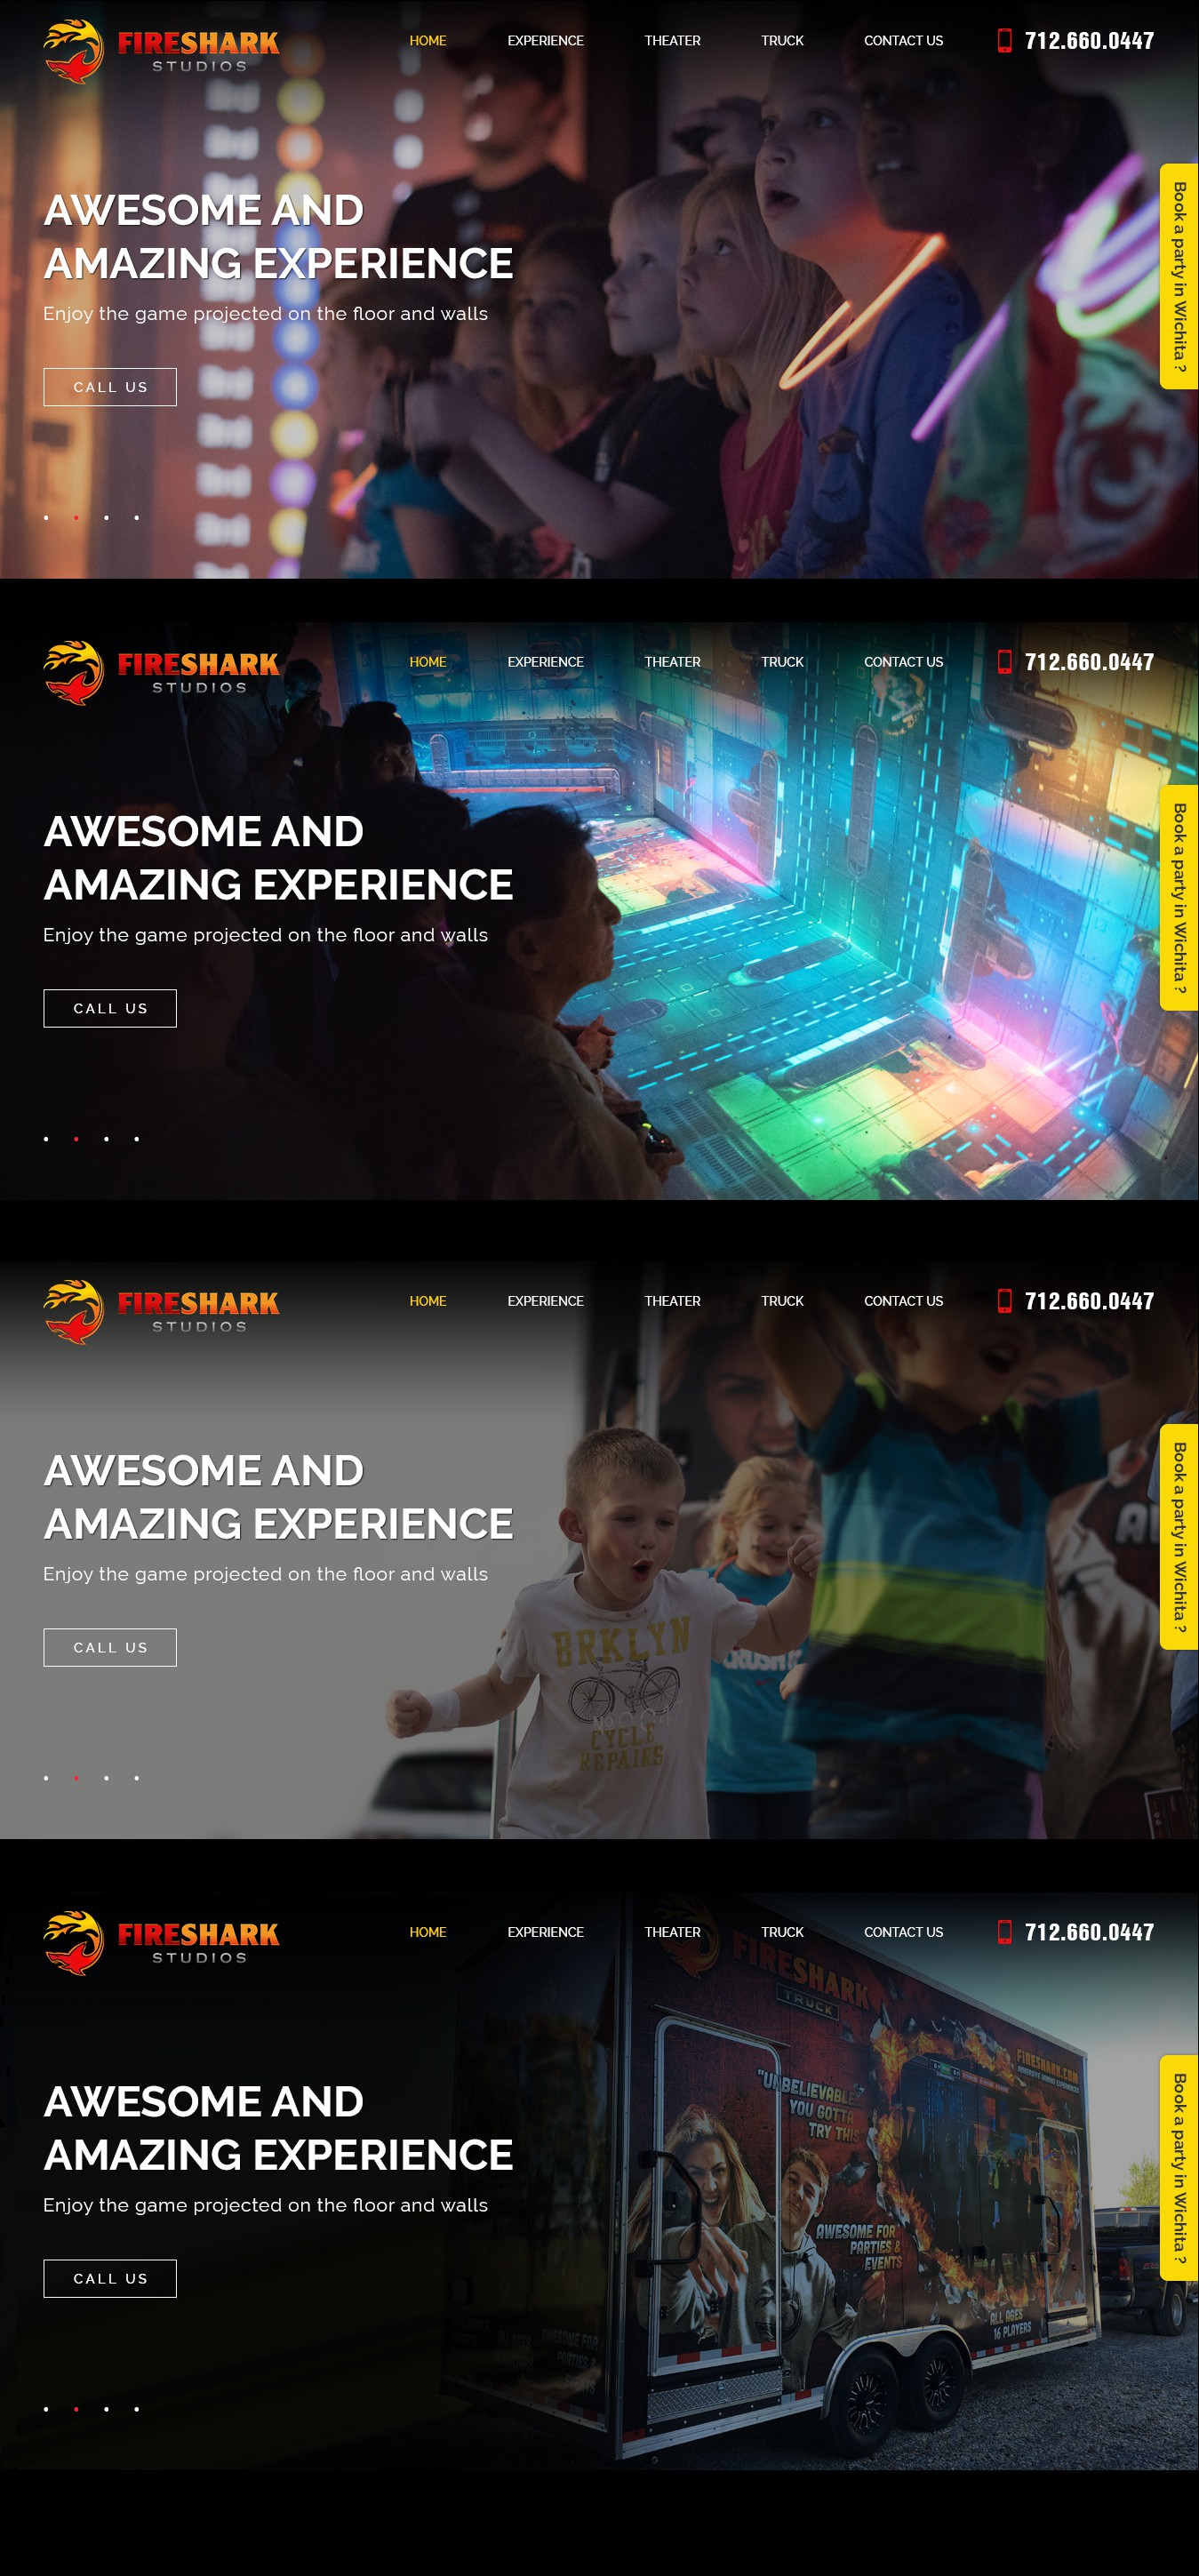 Create an exciting website for Fireshark Studios, an immersive video game company